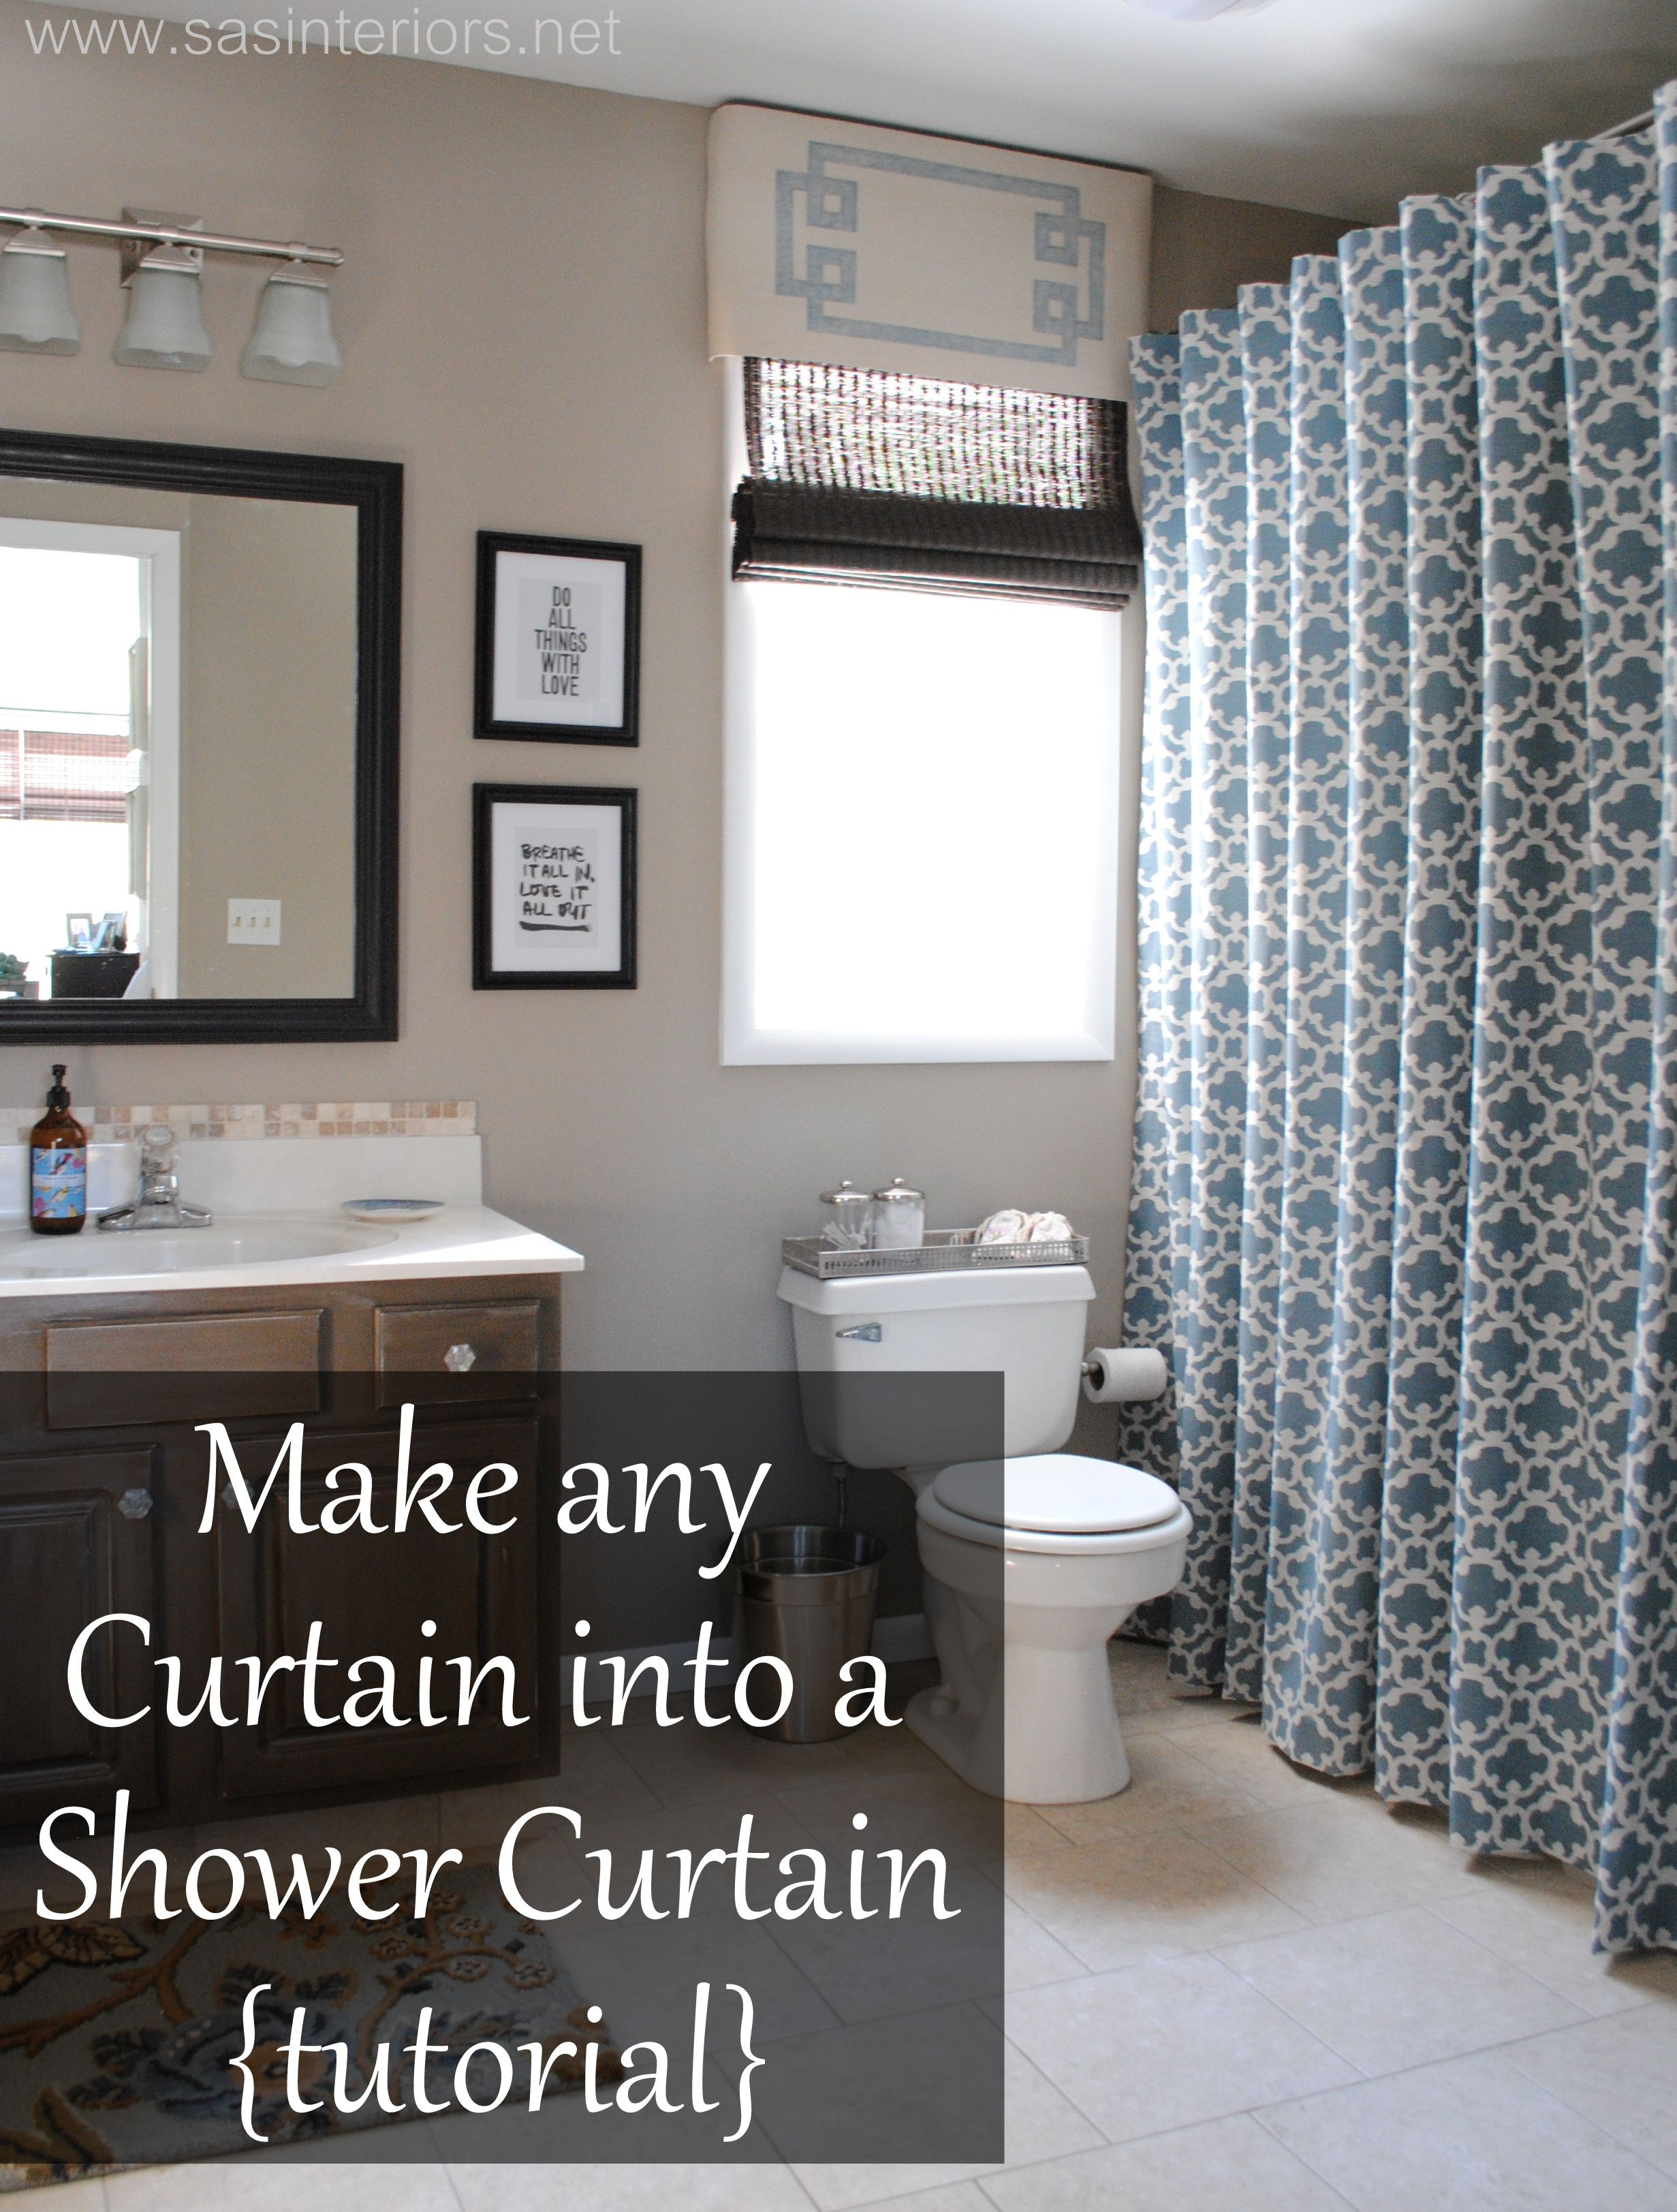 Diy bathroom curtain ideas - Shower Curtains Make Any Curtain Into A Shower Curtain Tutorial This Is A No Sew Project You Just Need Some Drapes That Match Your Bathroom